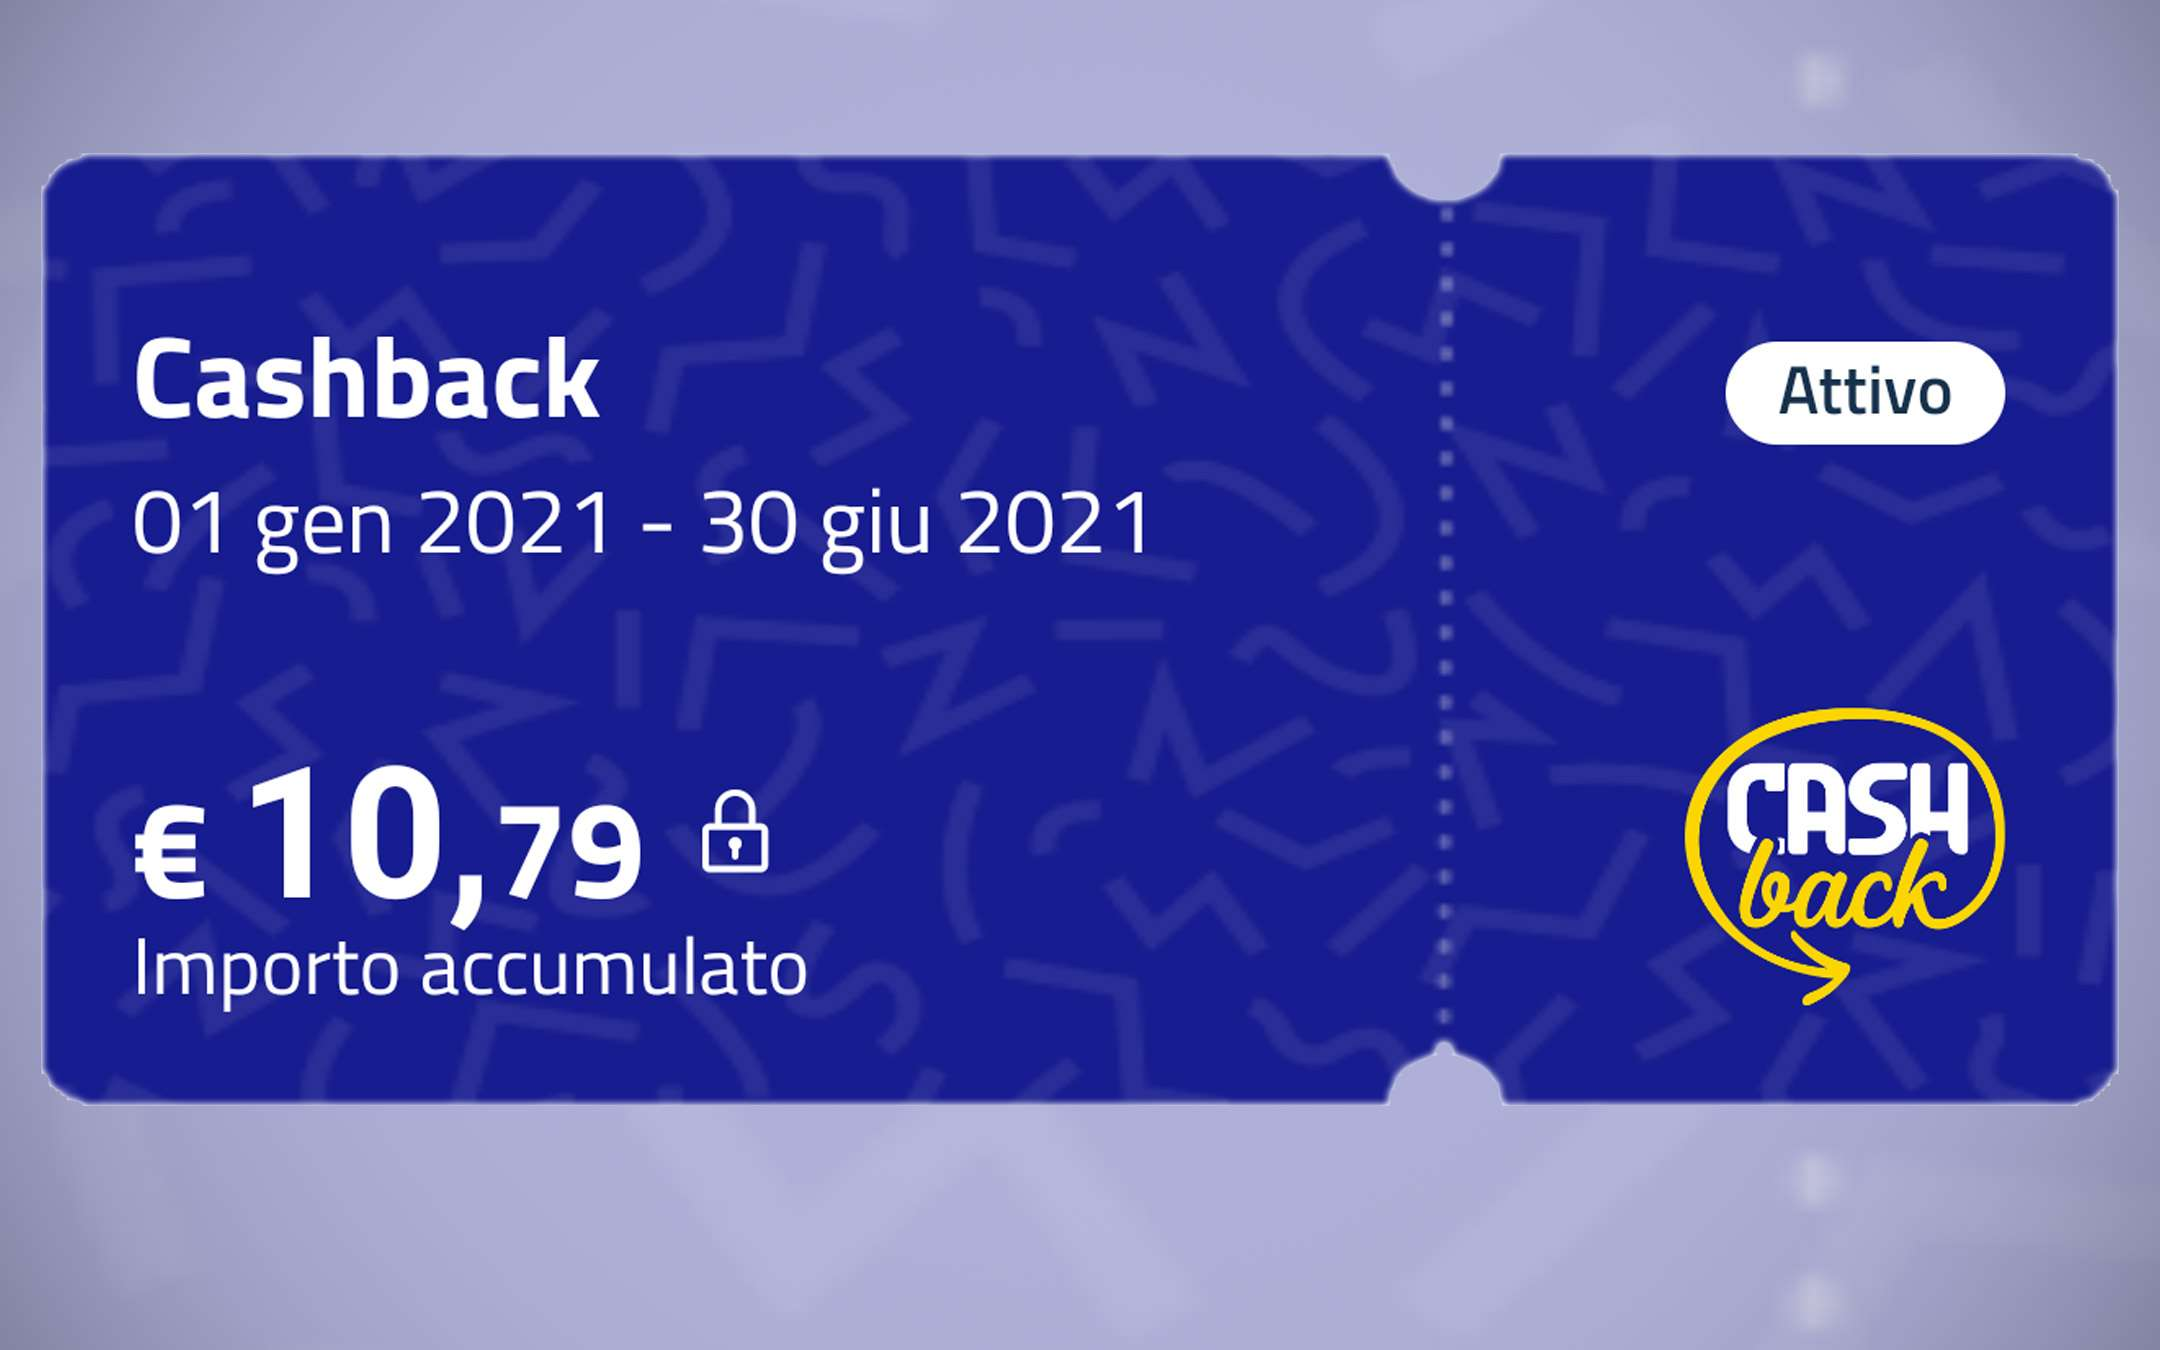 Cashback: transaction count stopped for 48 hours